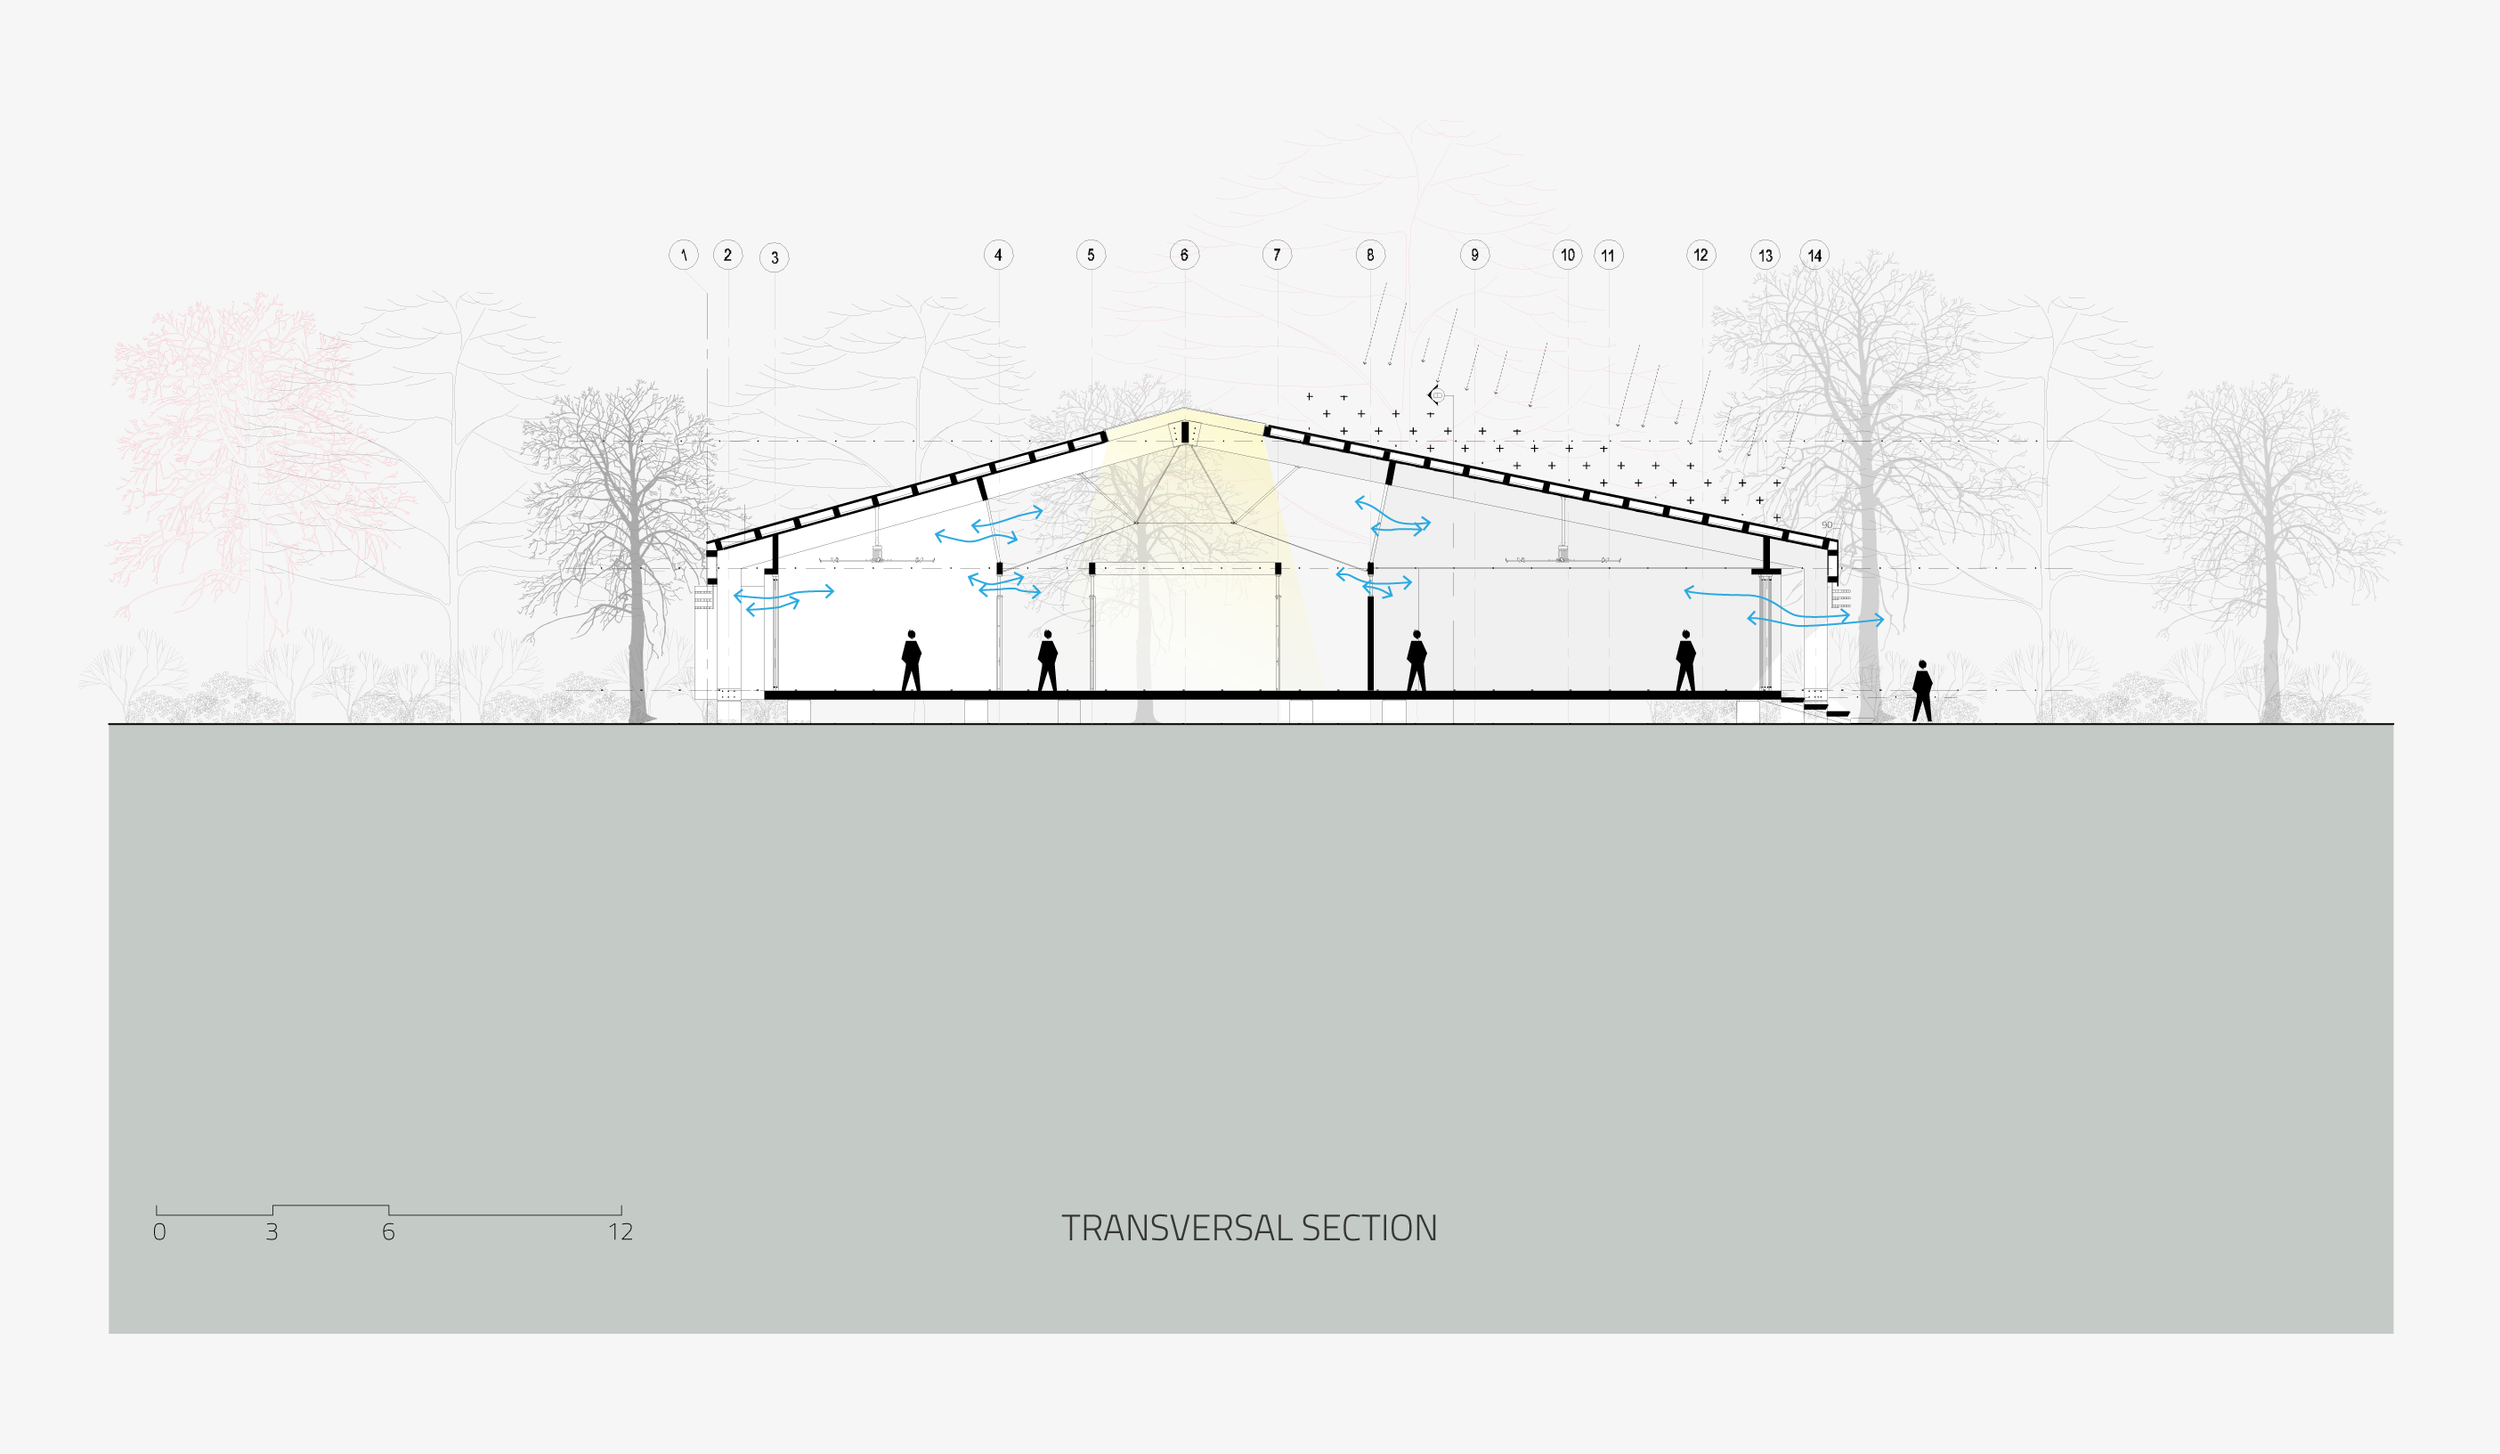 06_TRANSVERSAL-SECTION.png